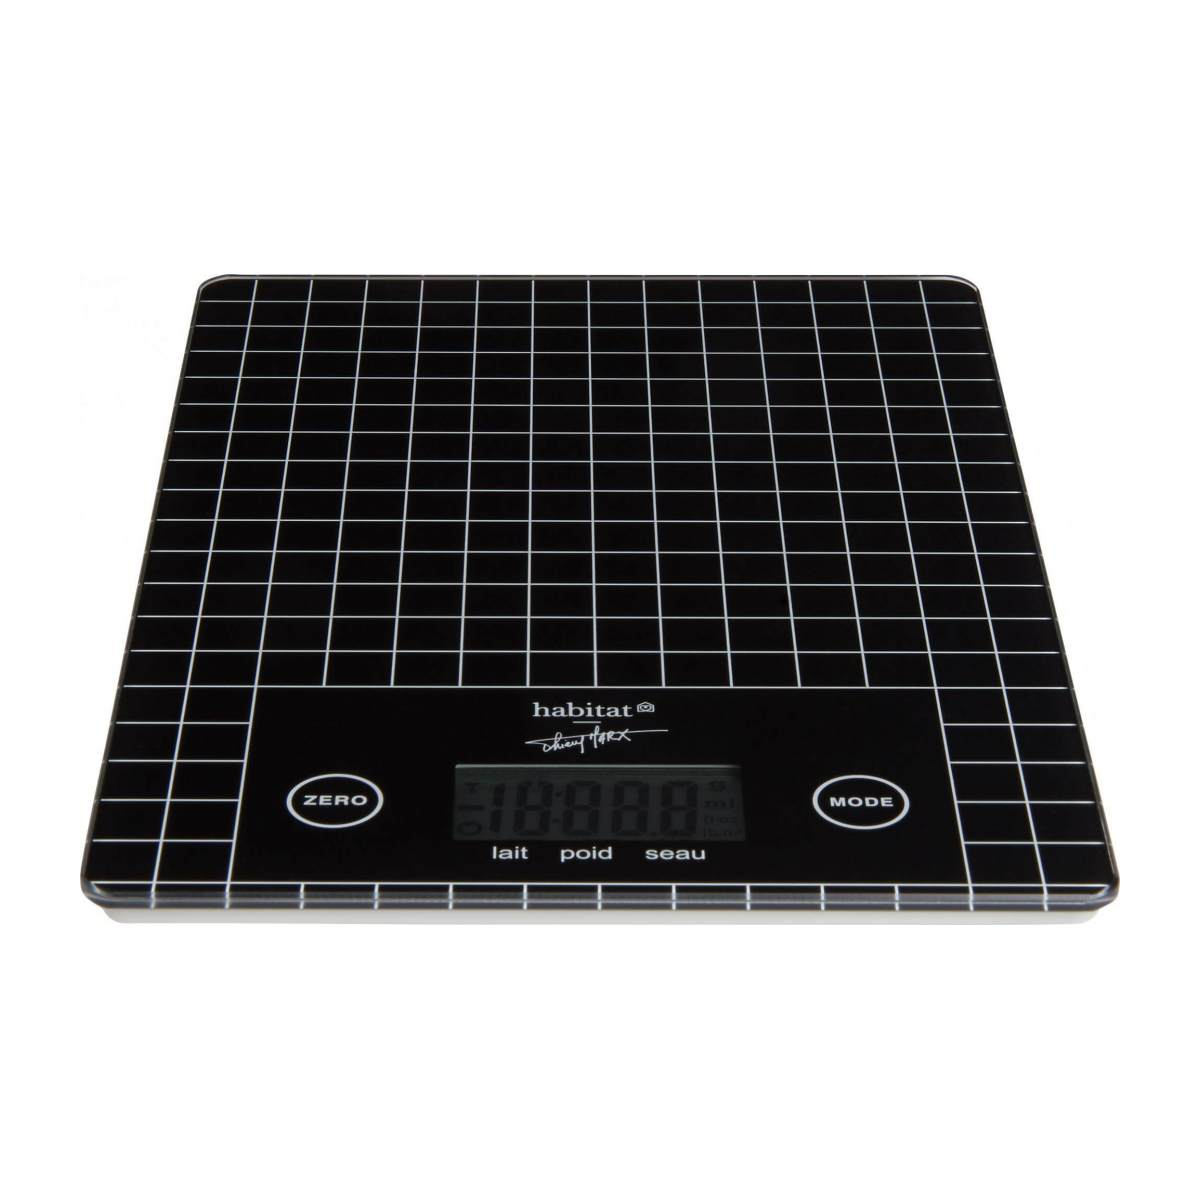 Electronic kitchen scales n°1